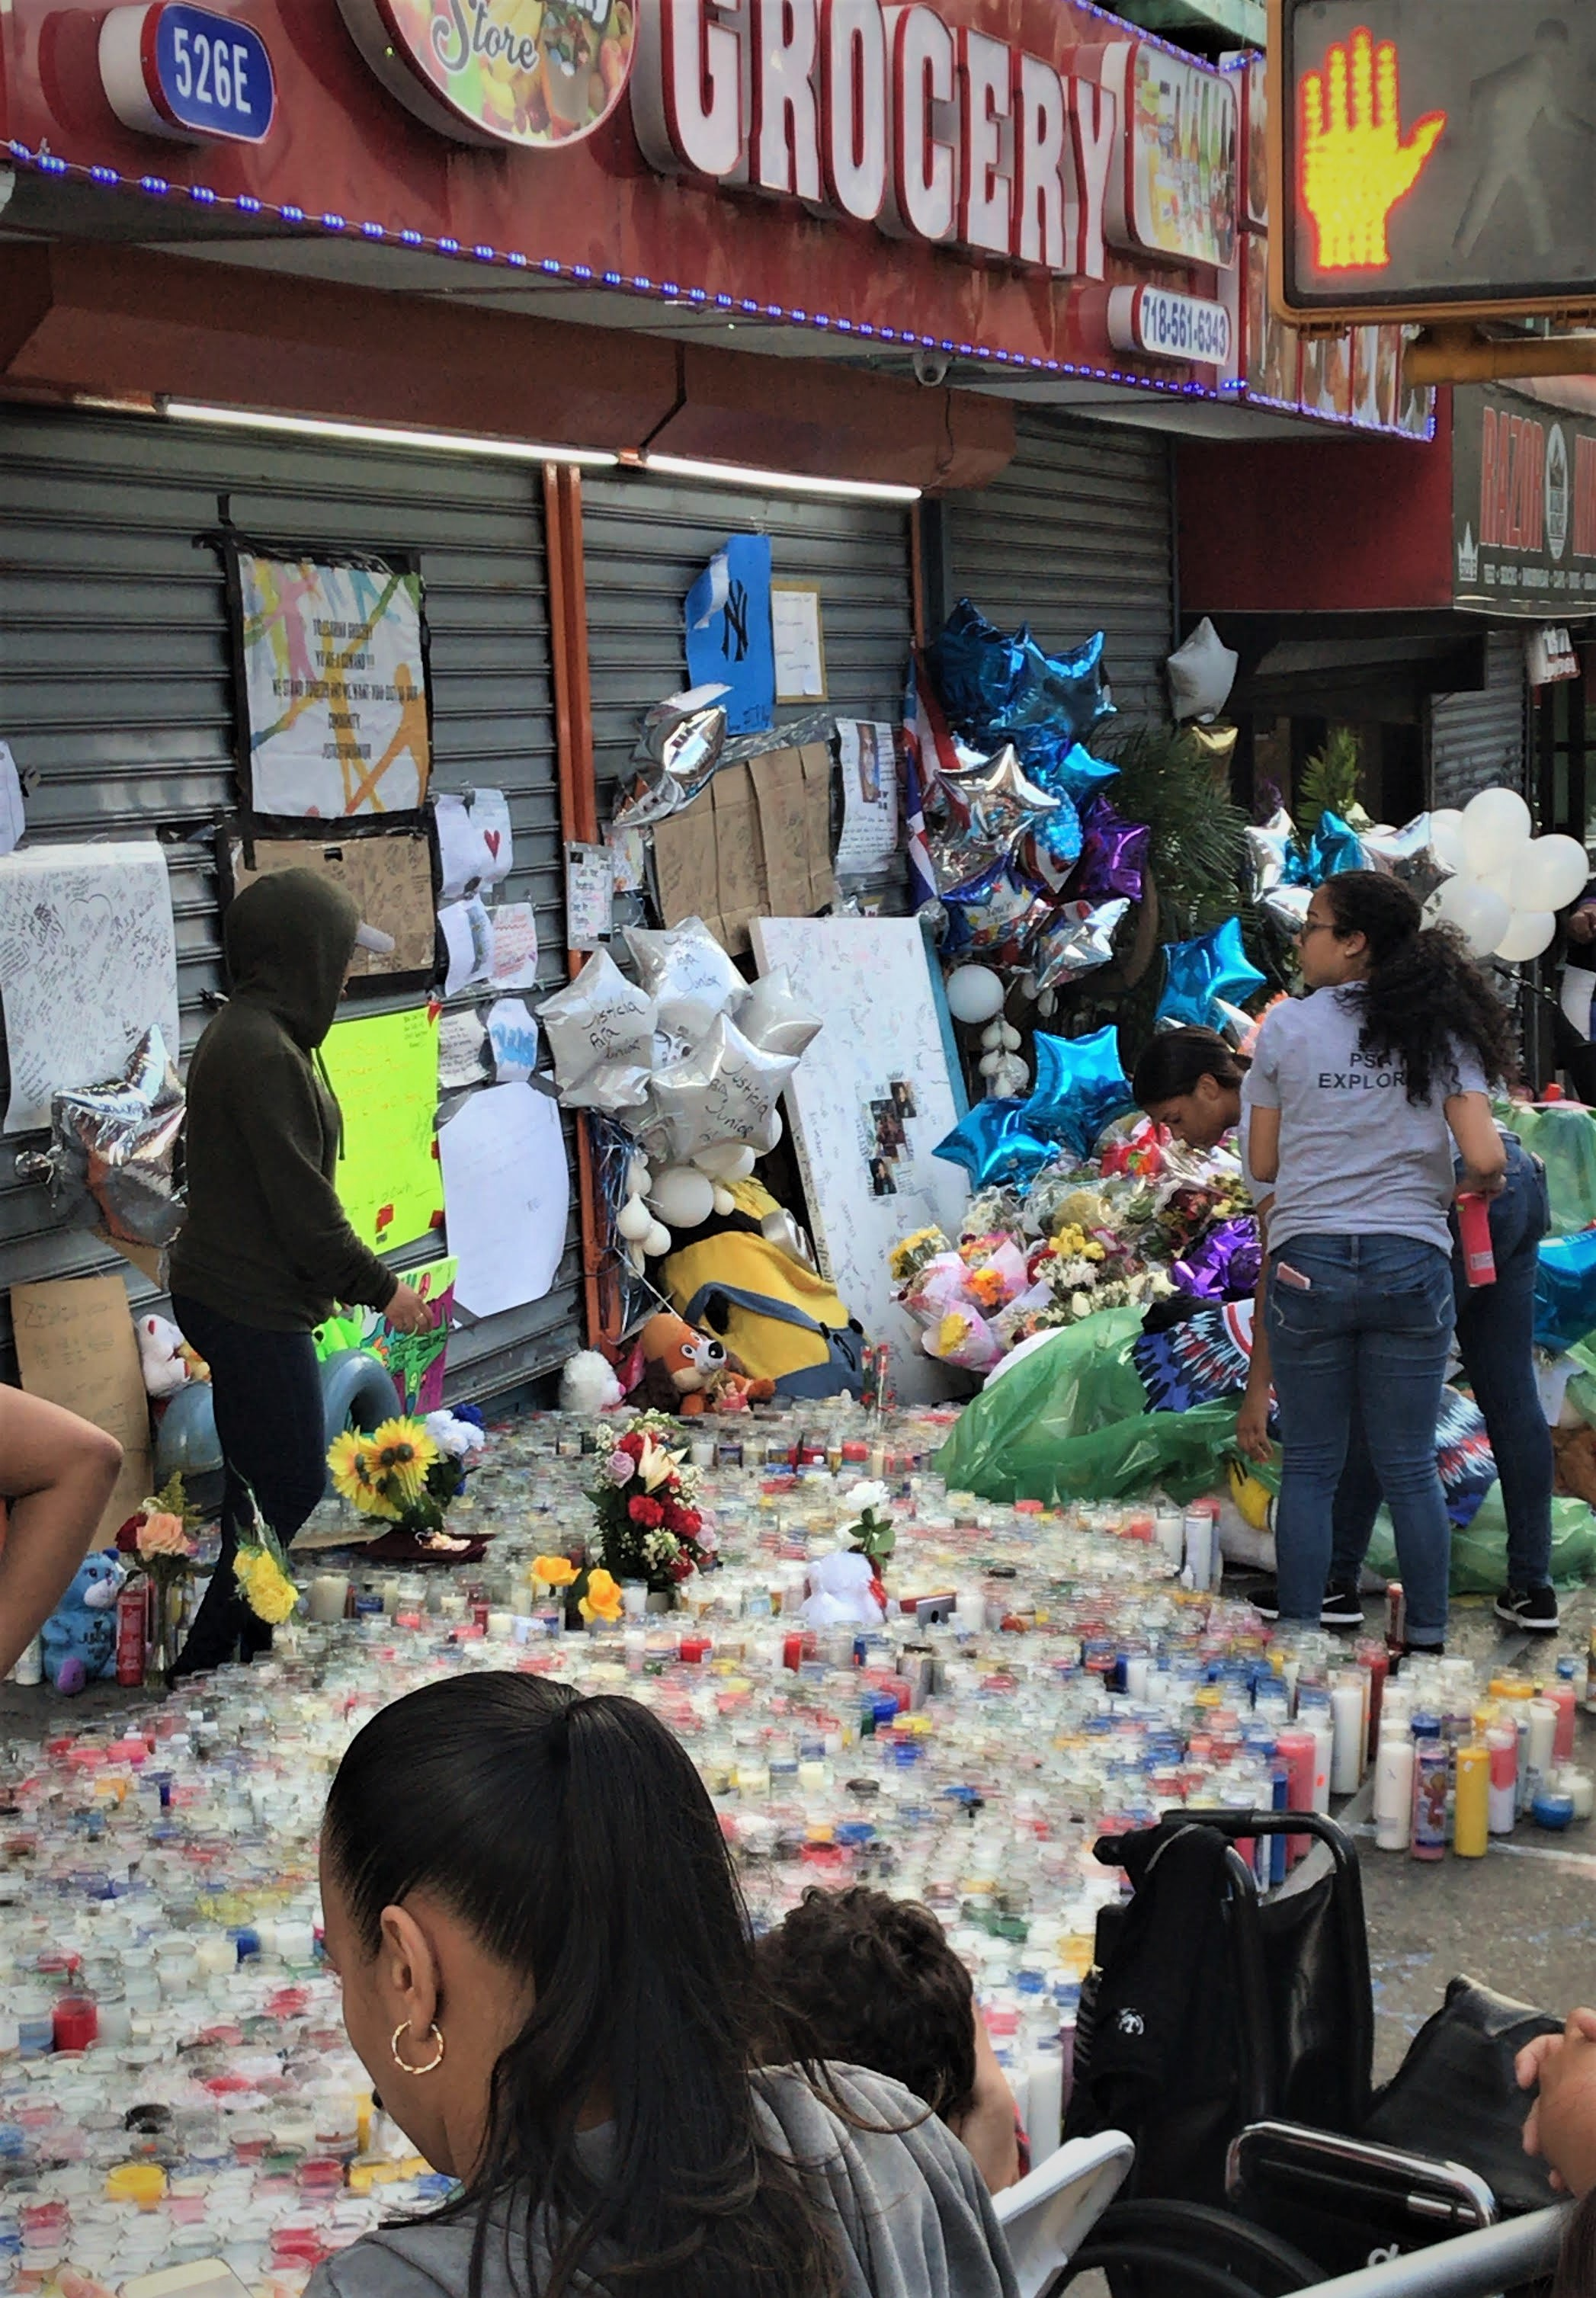 Photo of Gang murder in the Bronx: What do socialists have to say?